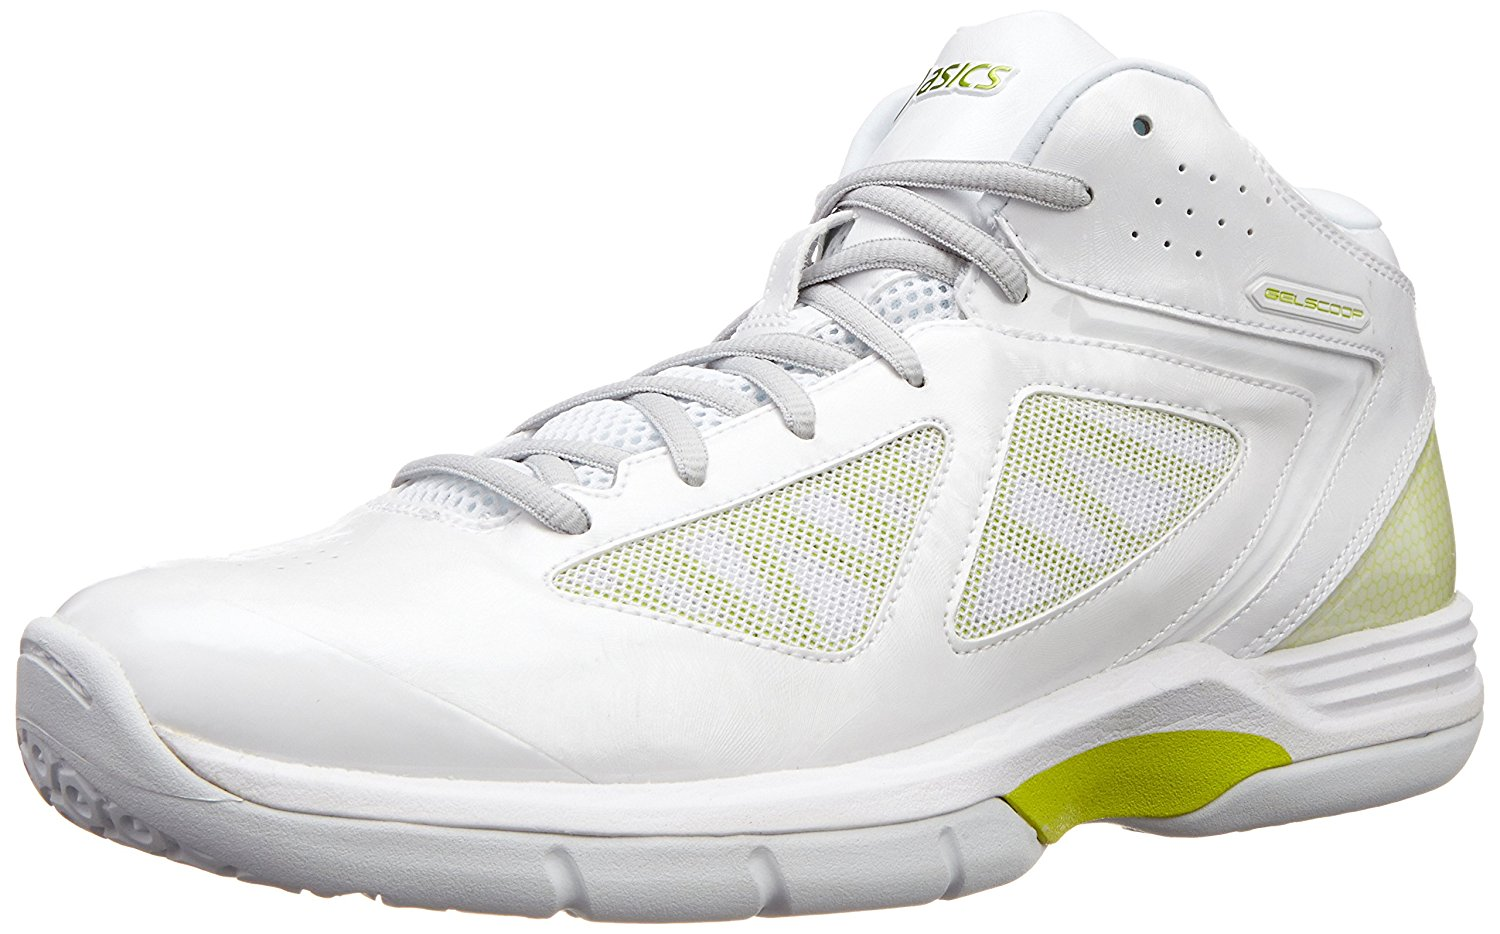 Asics Men's Gel Scoop Artificial Leather Basketball Shoes